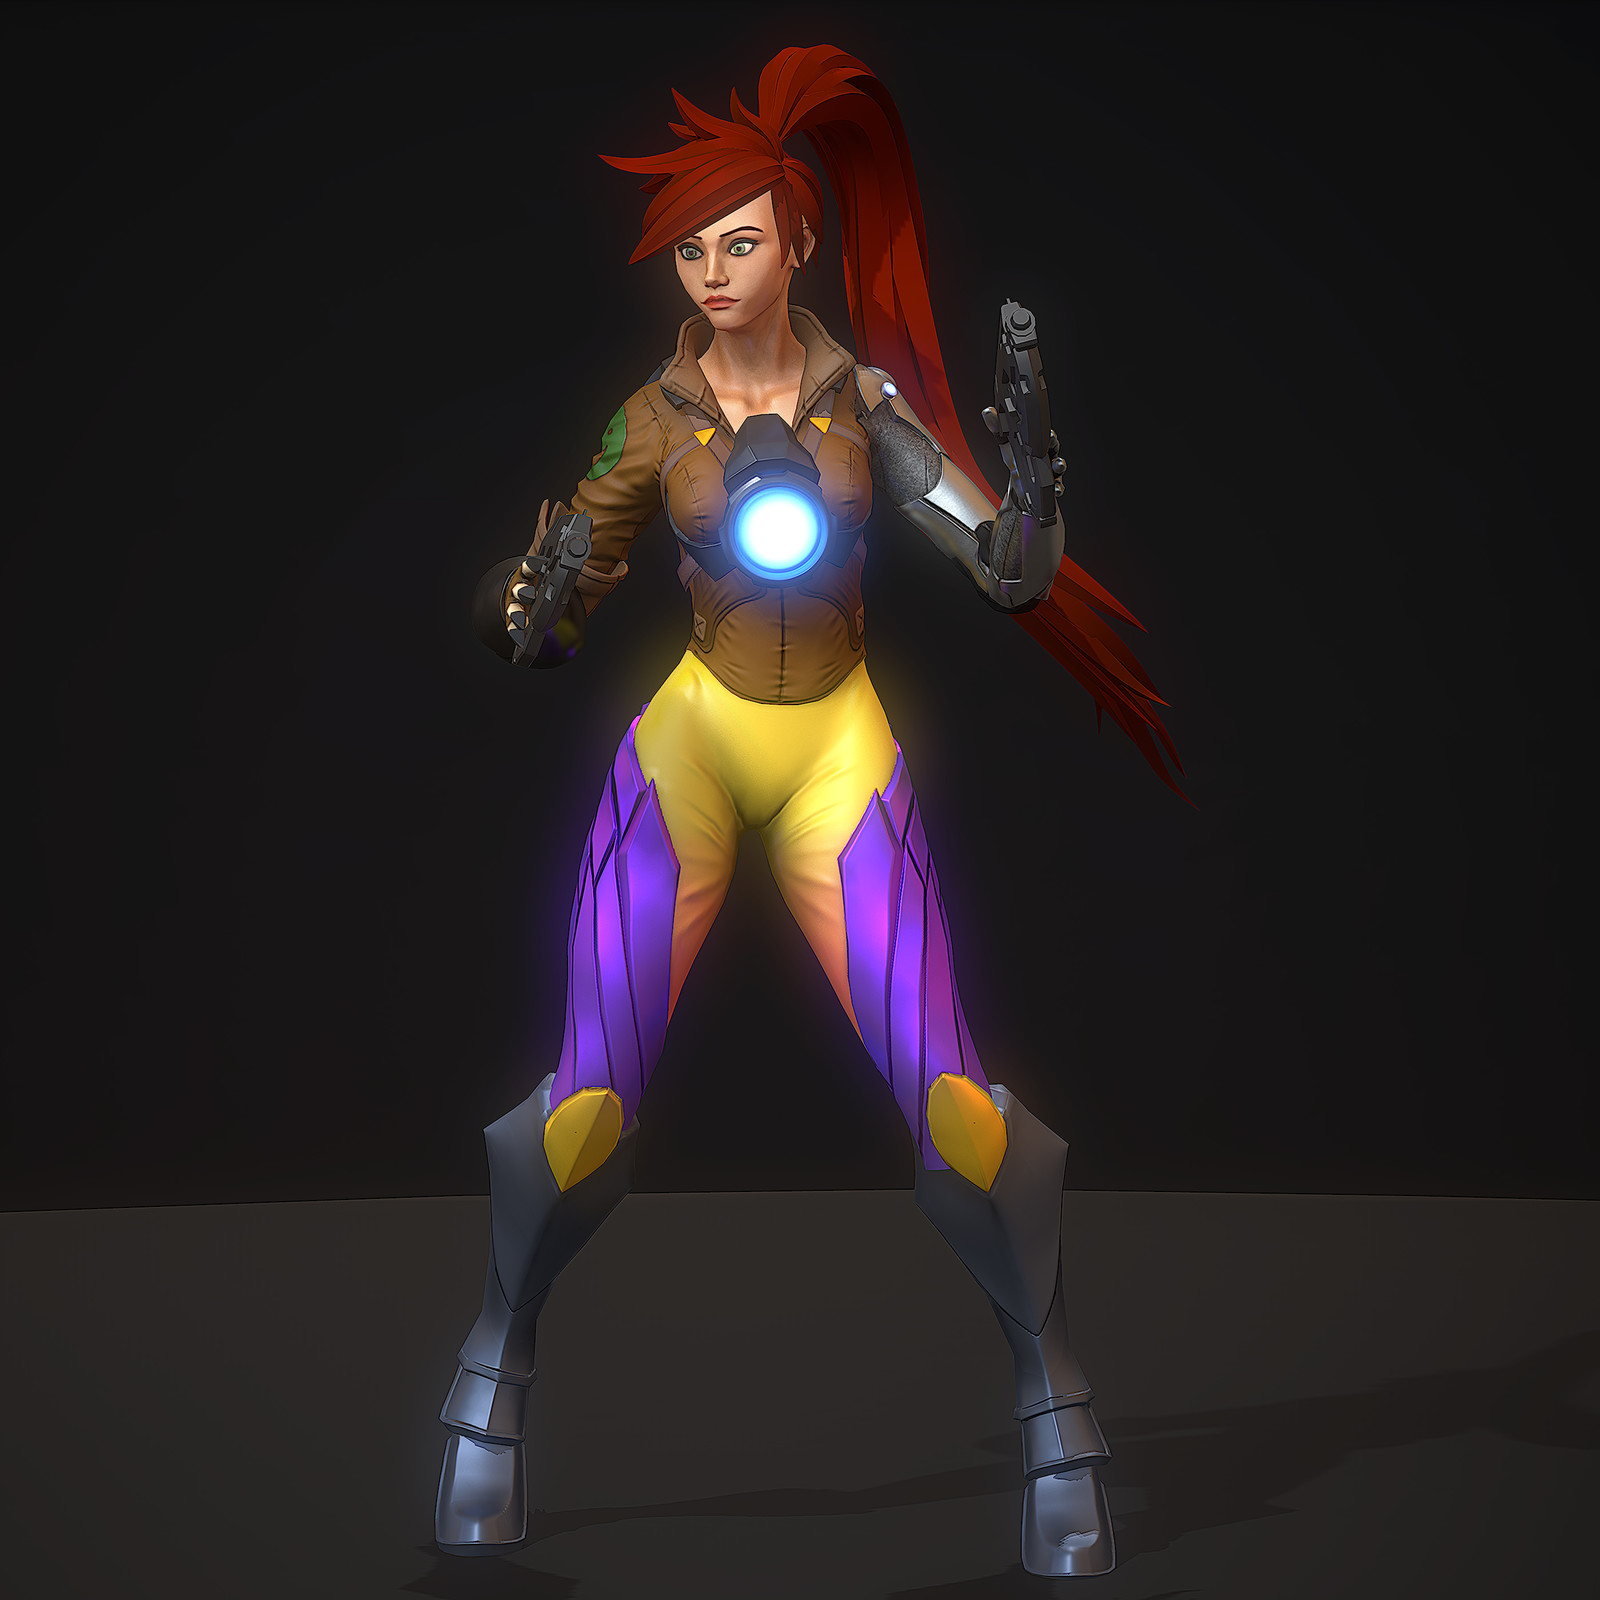 Overwatch Mash-Up Tracer